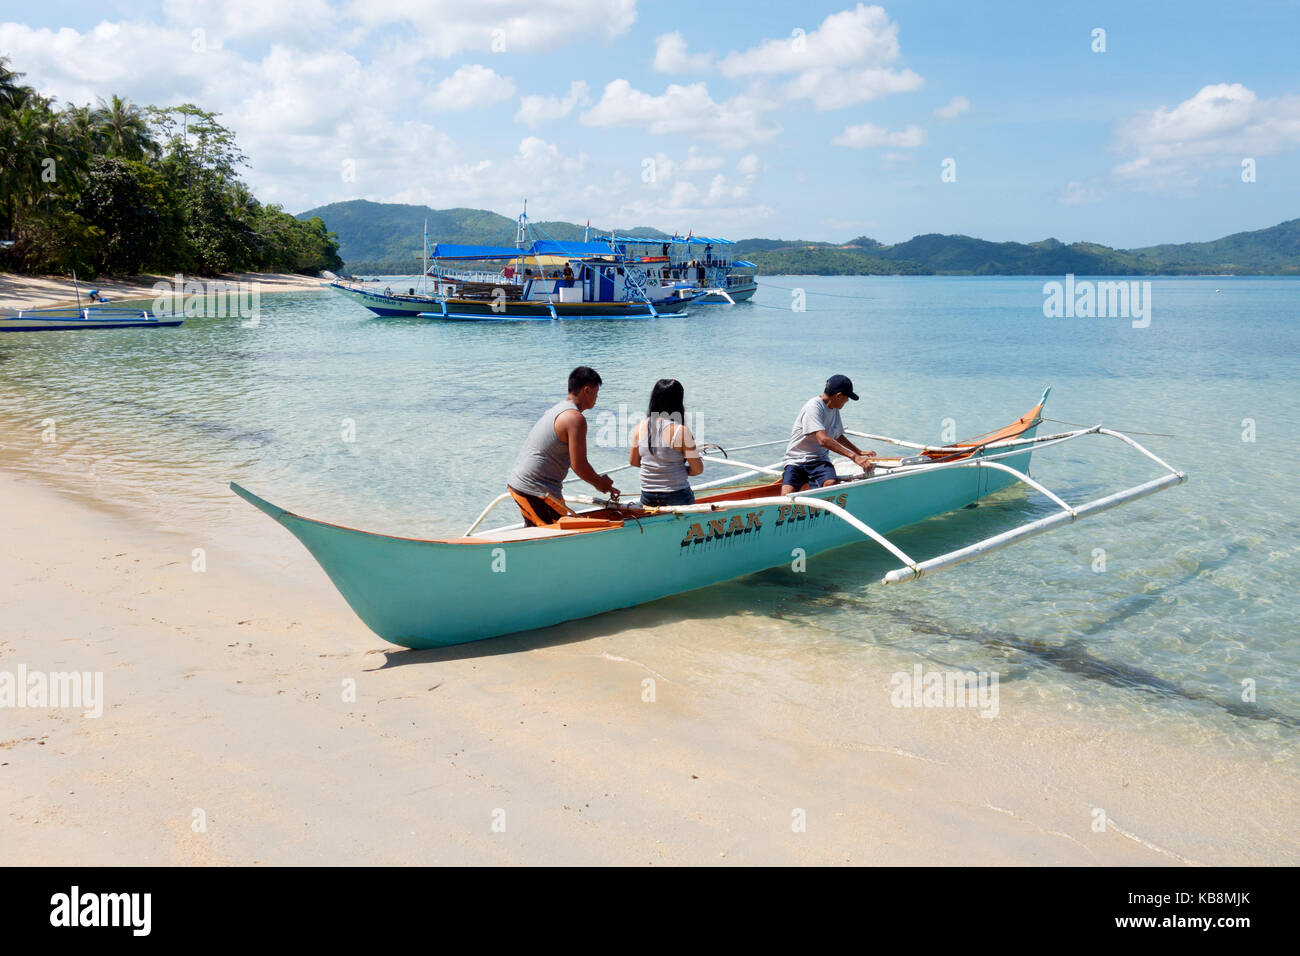 Palawan Philippines - local people pushing a boat out, El Nido, Palawan, Philippines Asia - Stock Image